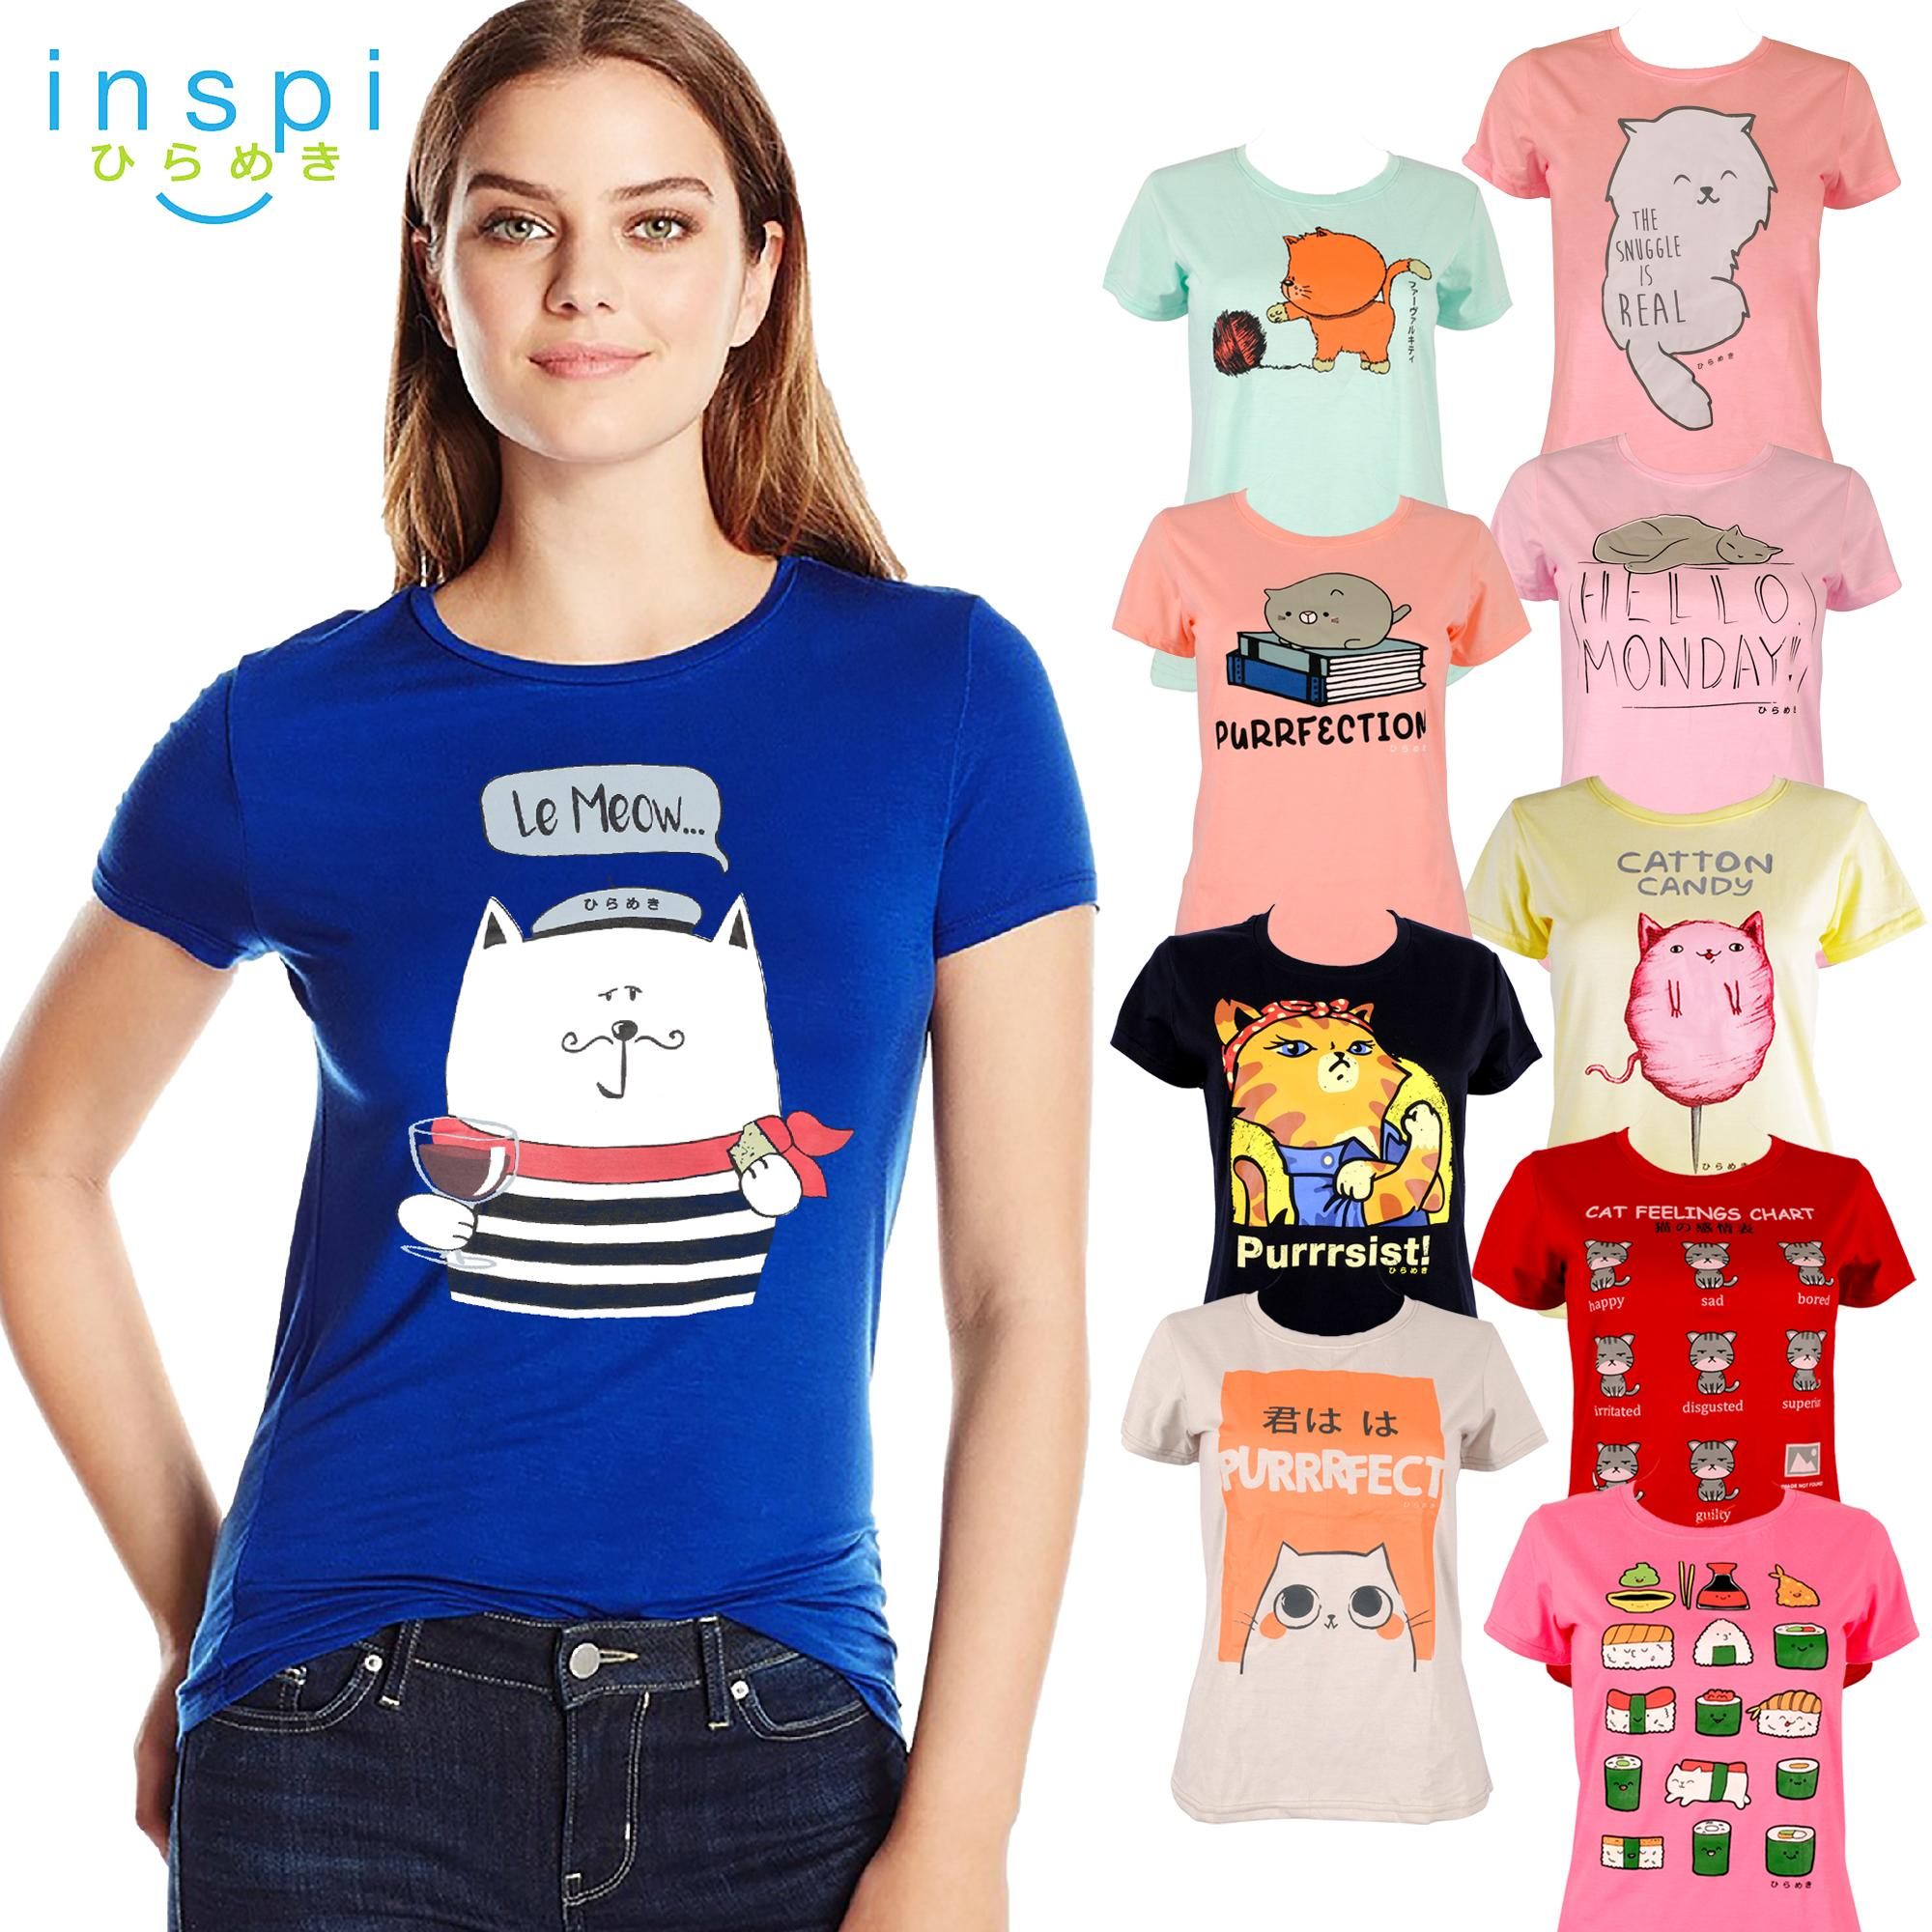 dbc6a0c57a5 INSPI Tees Ladies Neko Collection tshirt printed graphic tee Ladies t shirt  shirts women tshirts for